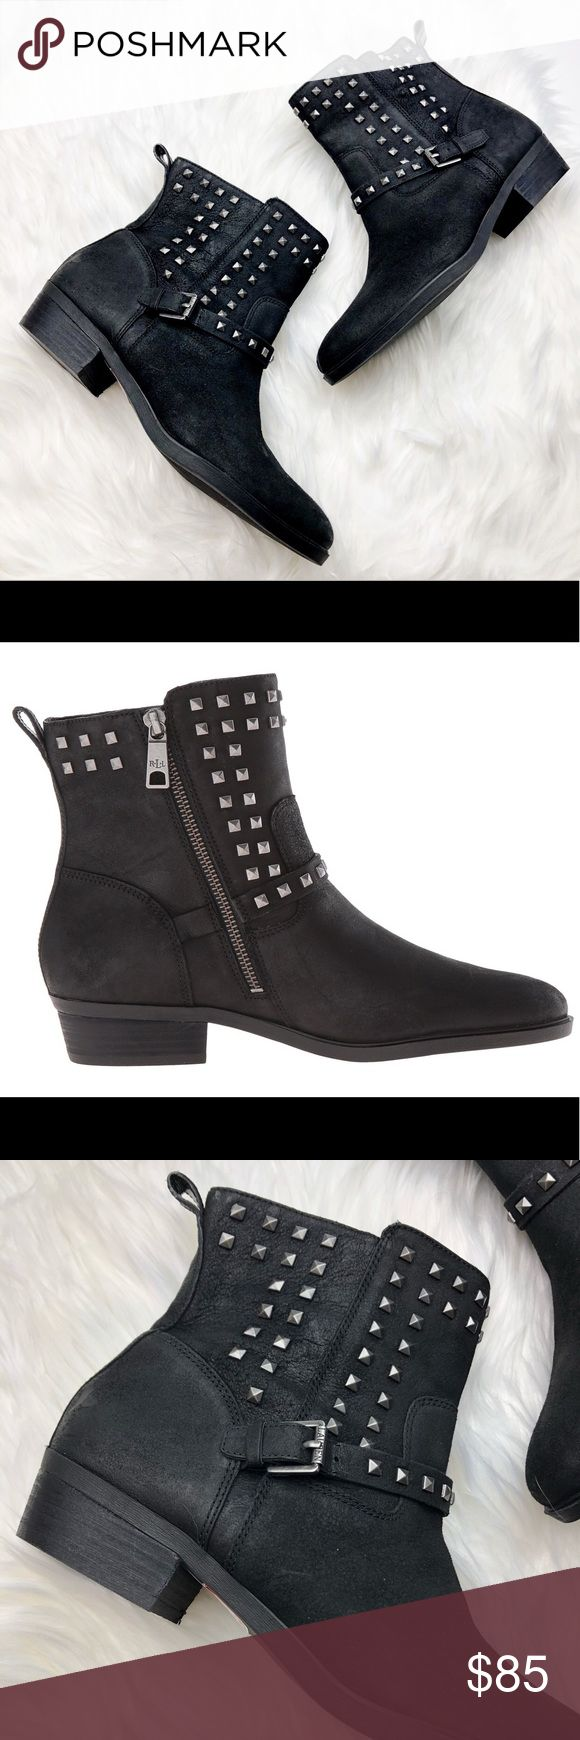 New Ralph Lauren Studded Leather Moto Boots So chic and perfectly on trend! Perfect dressed up or down. Brand new without box. Silver stud details. Size 9.5. Interior zip. No trades!! Lauren Ralph Lauren Shoes Ankle Boots & Booties